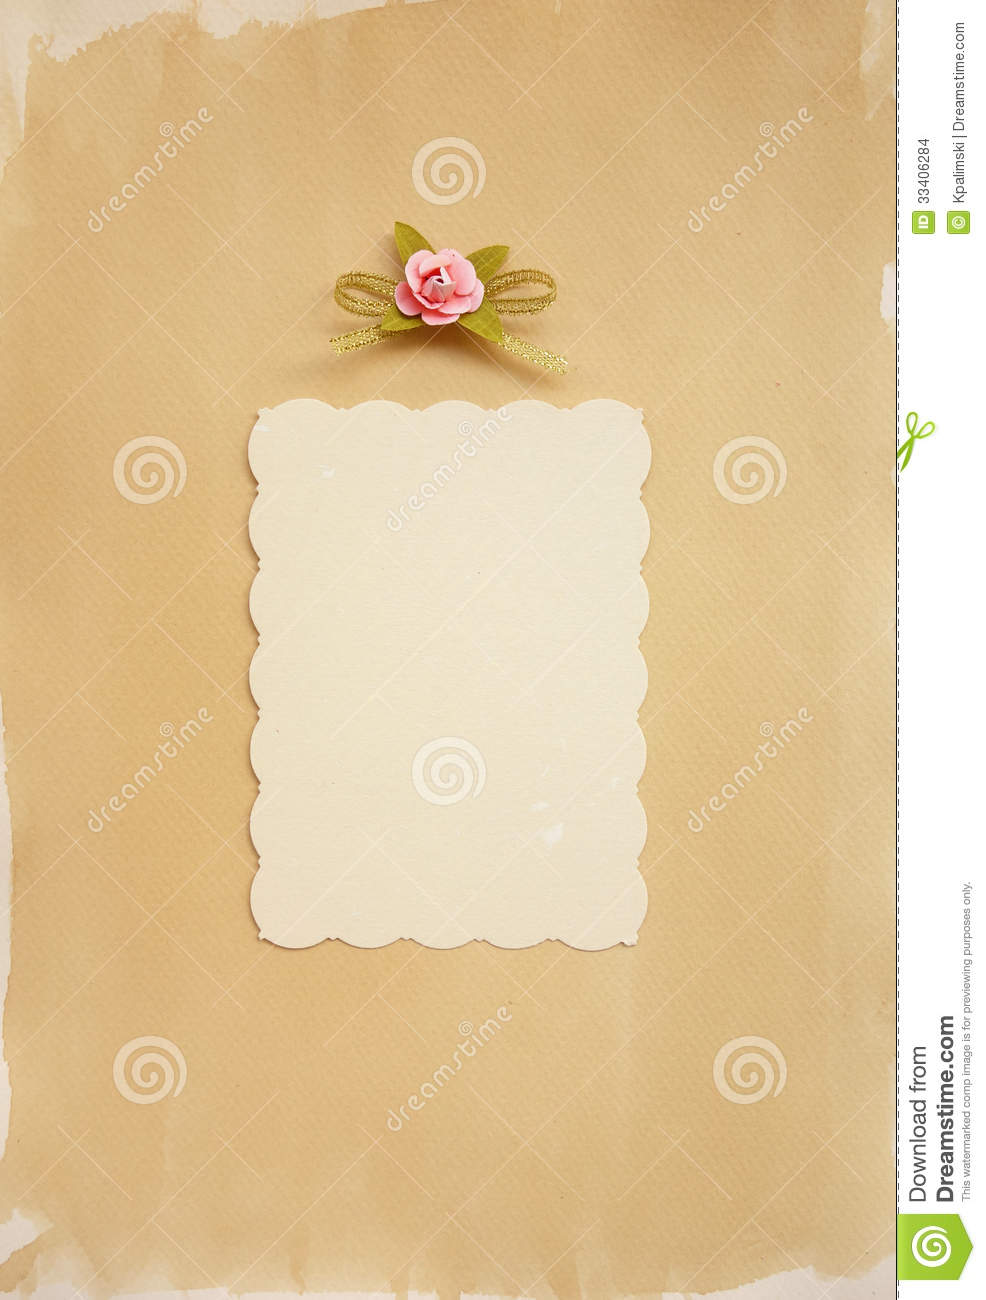 Blank Diary Page Stock Images - Image: 33406284